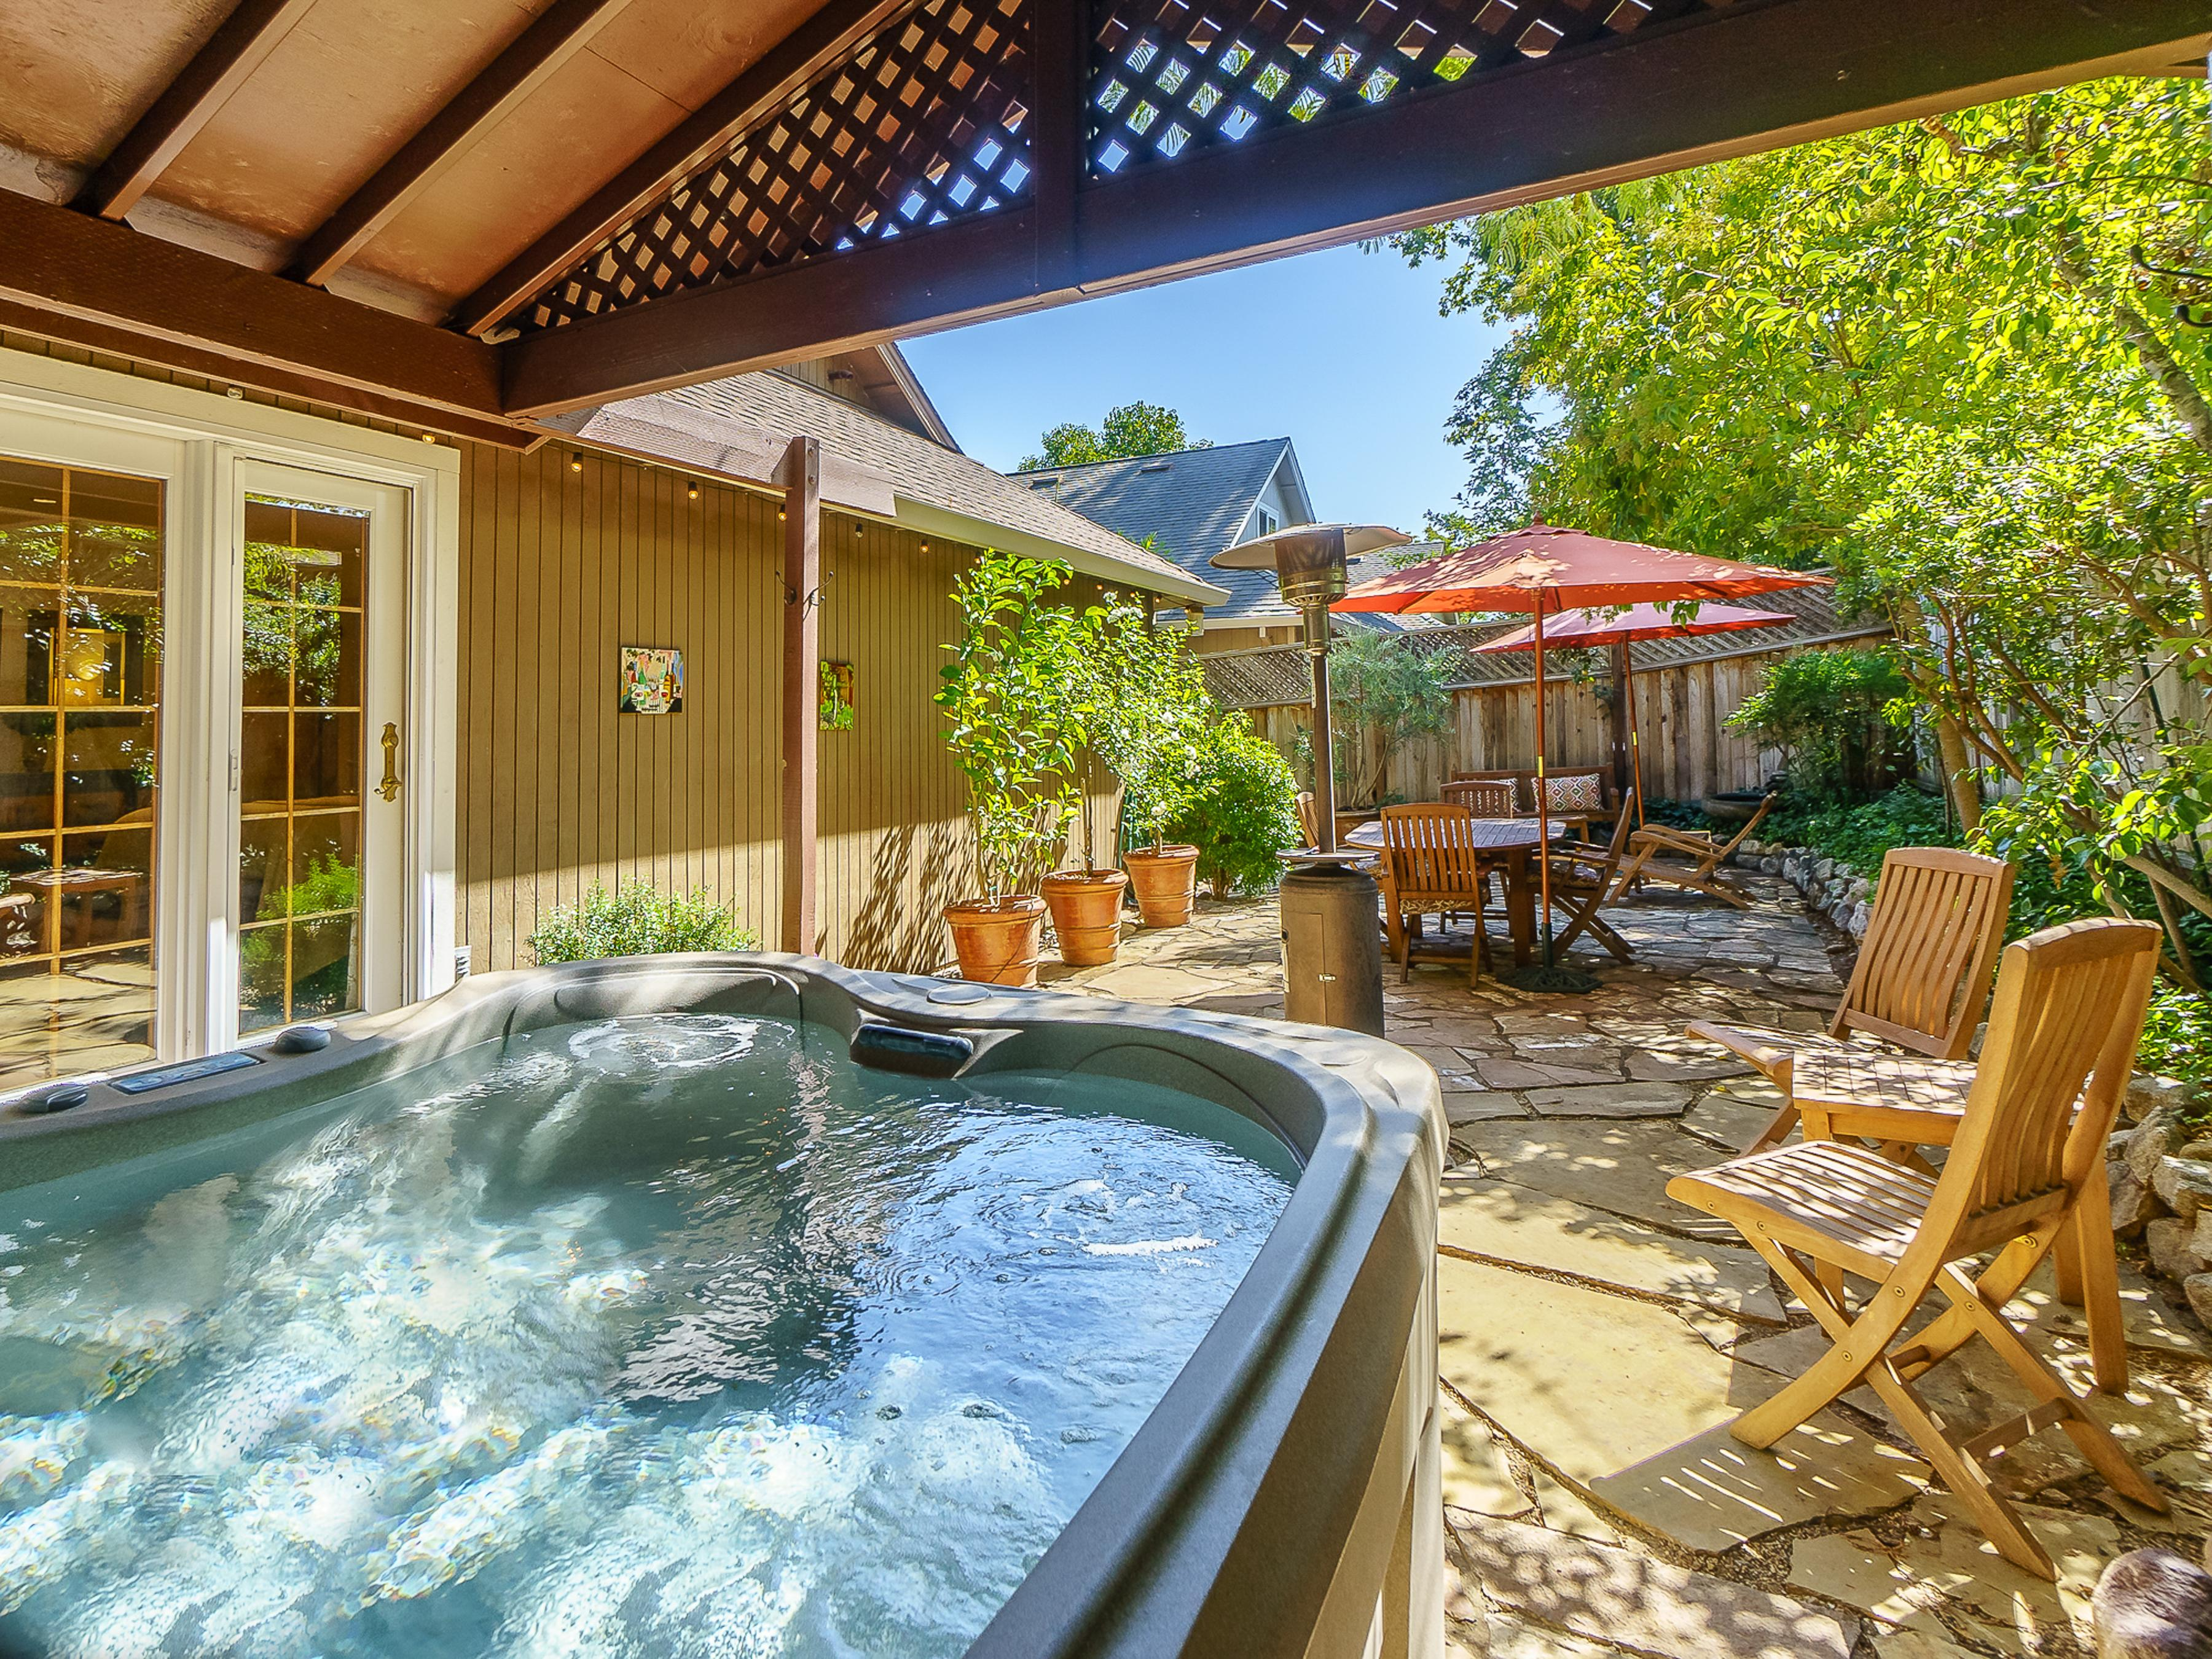 Enjoy a relaxing soak in the covered hot tub. Your rental is professionally managed by TurnKey Vacation Rentals.